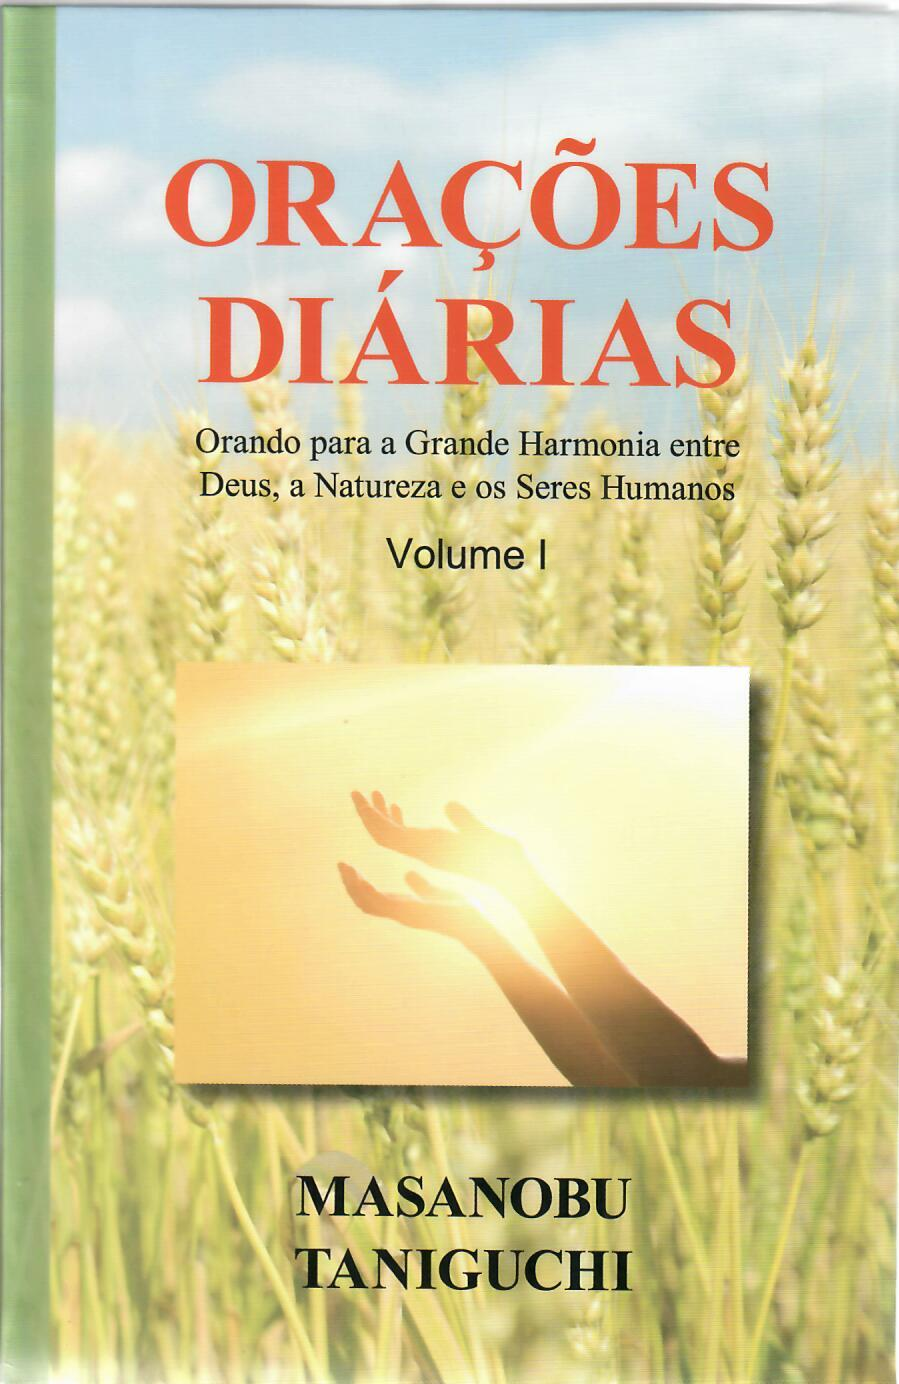 Oracoes Díarias vol. 1